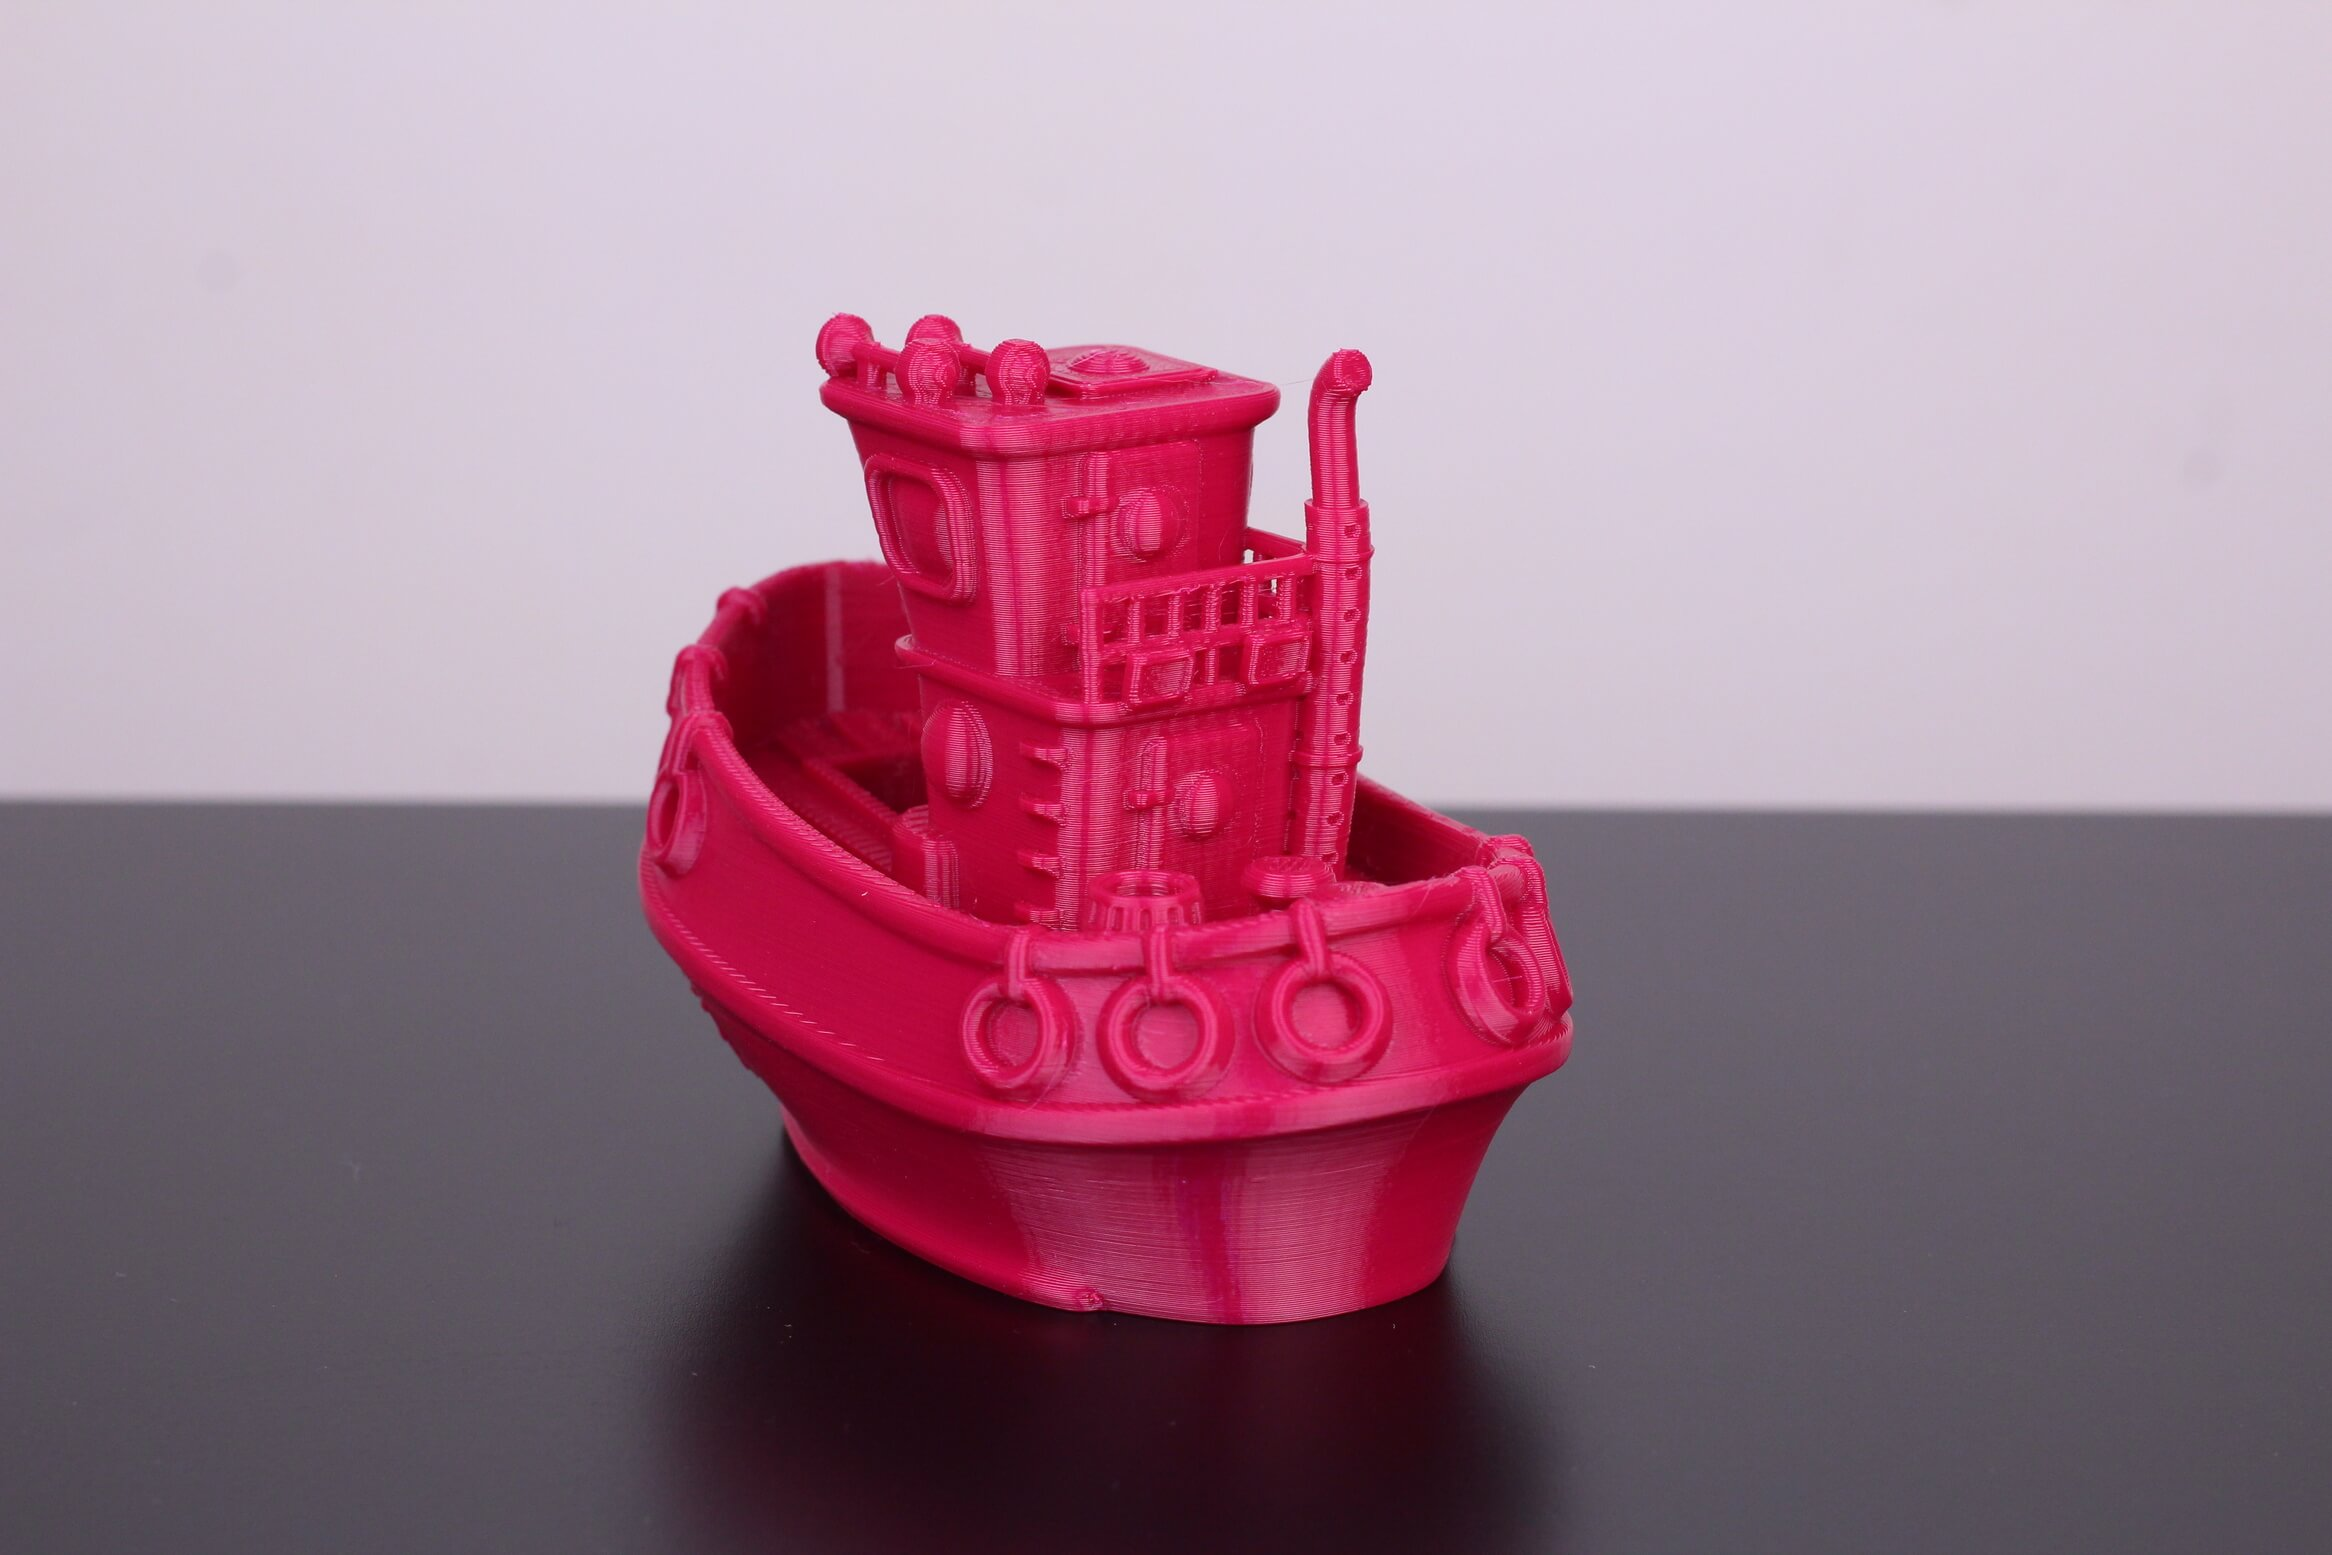 Bathtub-Boat-printed-in-PETG-on-BIQU-BX-5